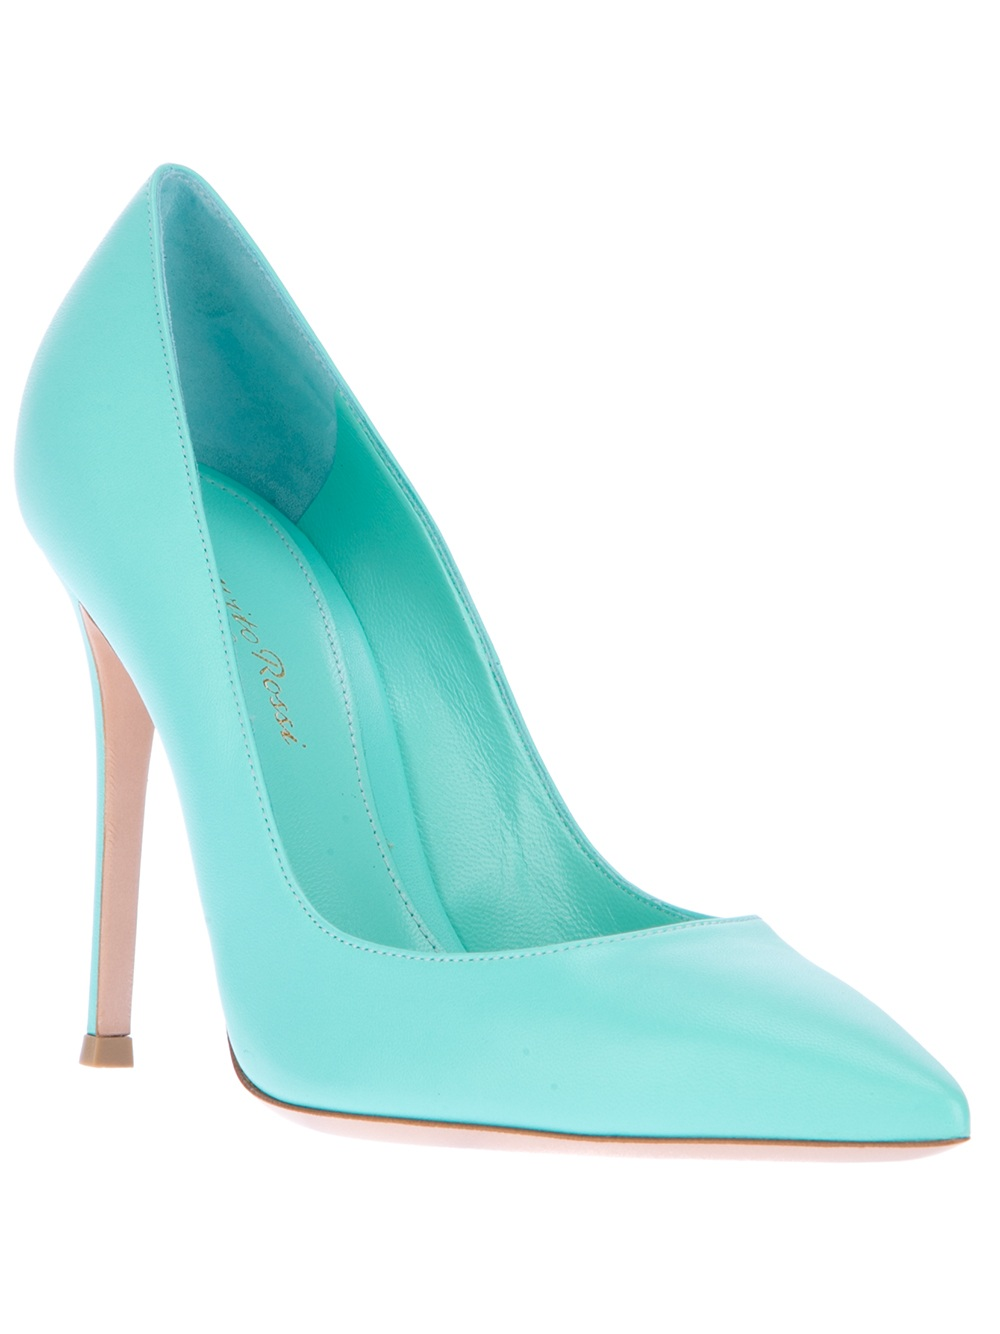 Lyst - Gianvito rossi Pointed Heeled Pump in Blue